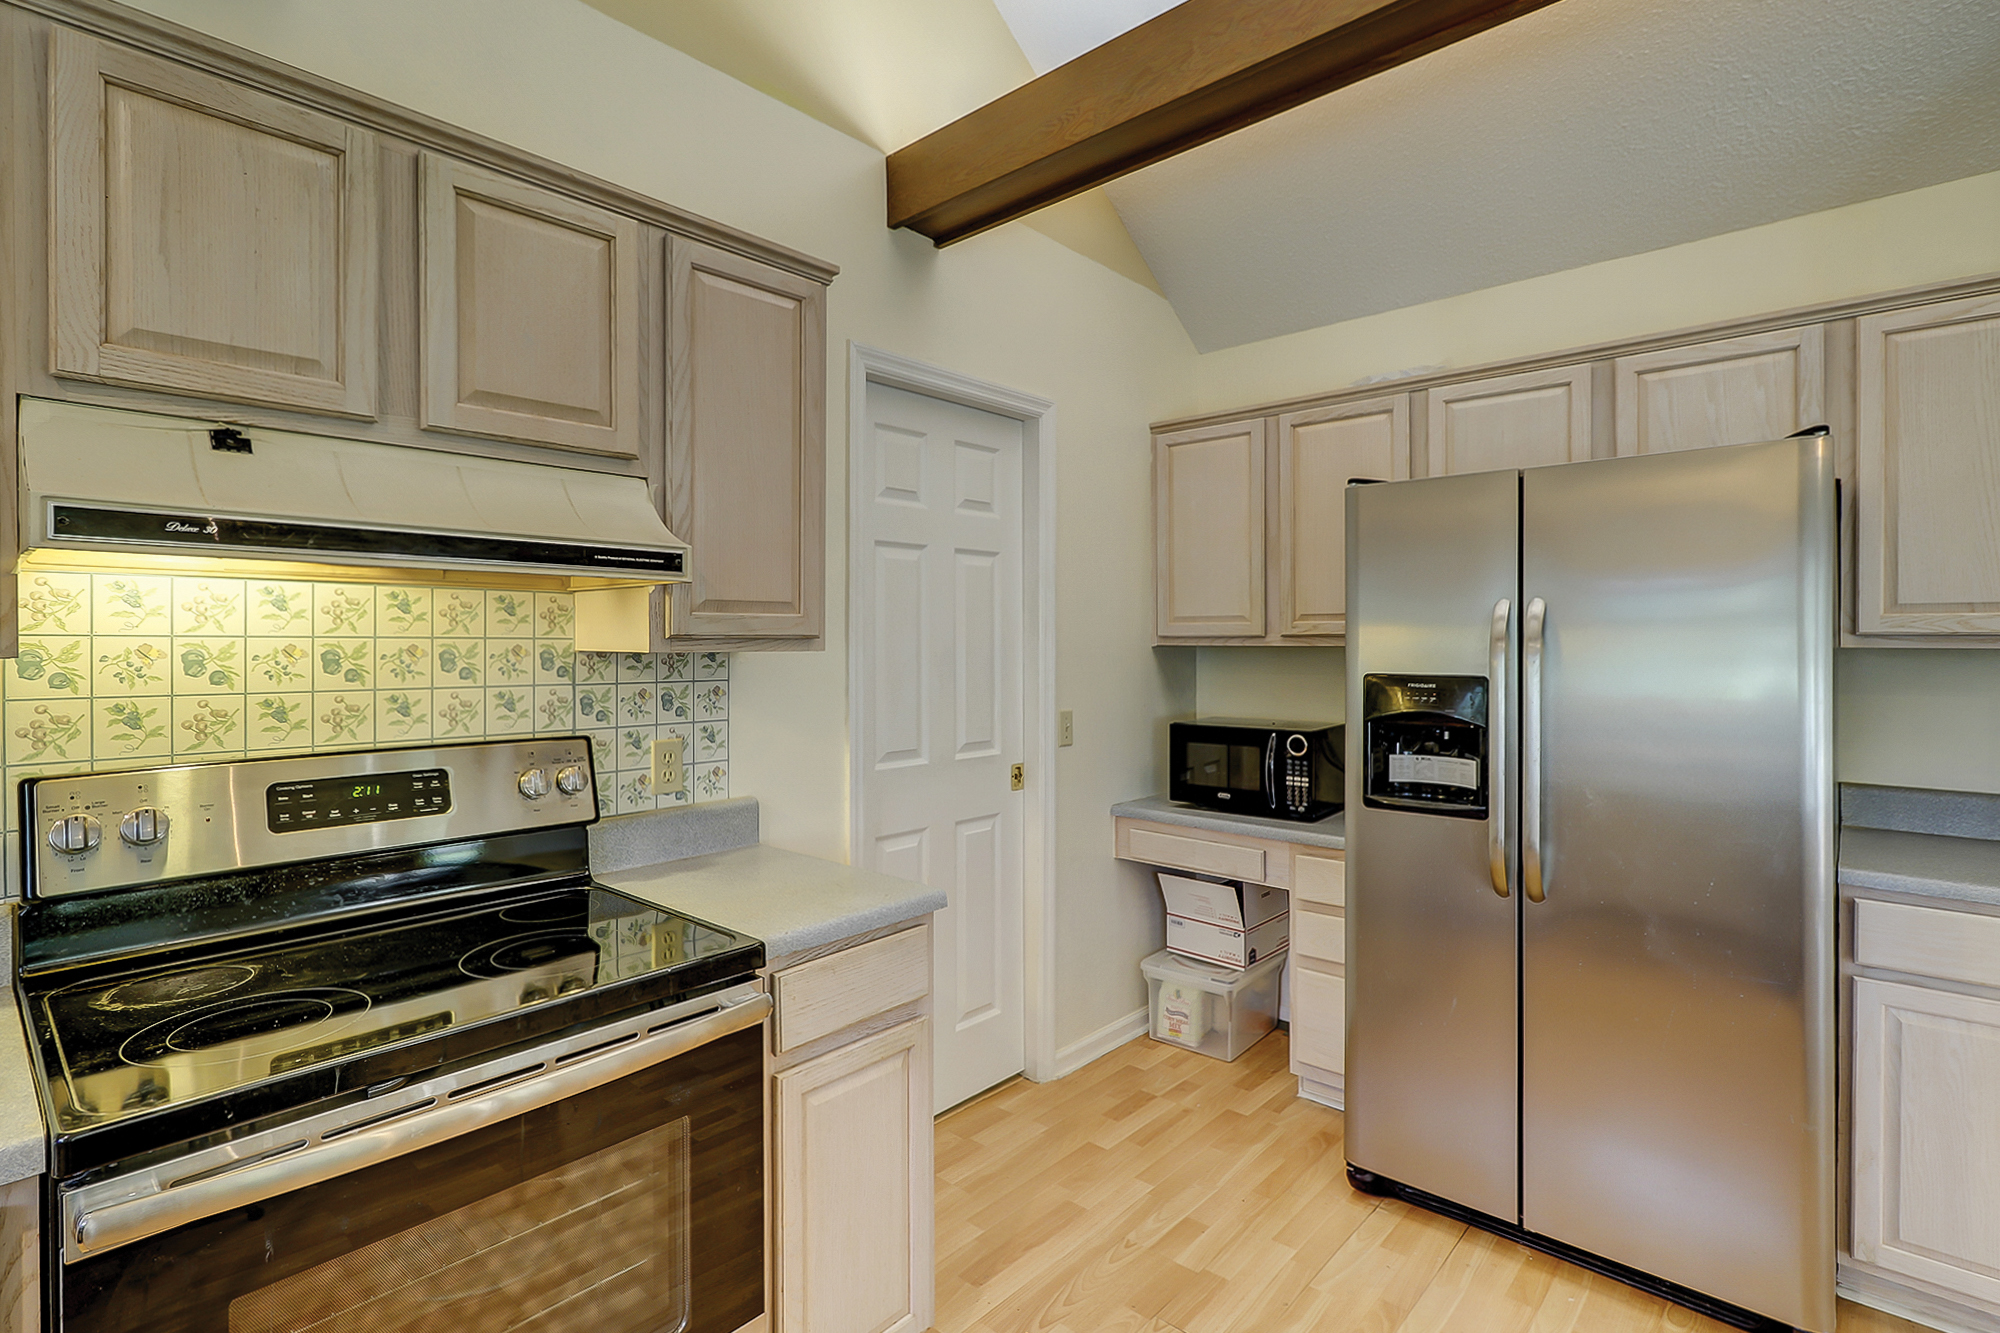 New Range and Refrigerator in this Rose Hill Home For Sale